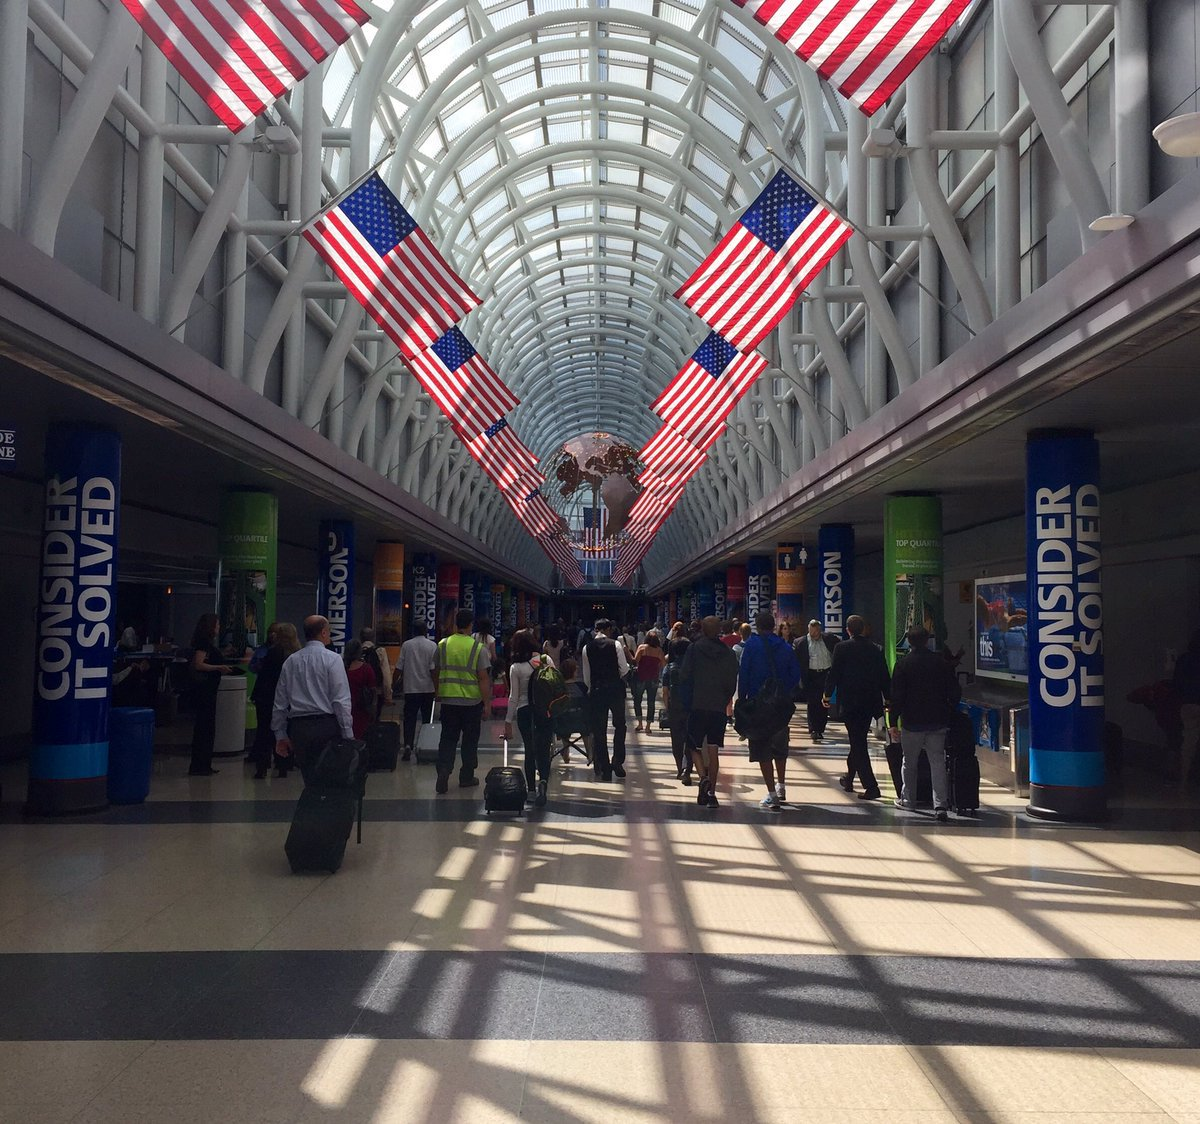 Over 1.5 mill passengers expected to travel via ORD over the holiday period photo:@jcarlough